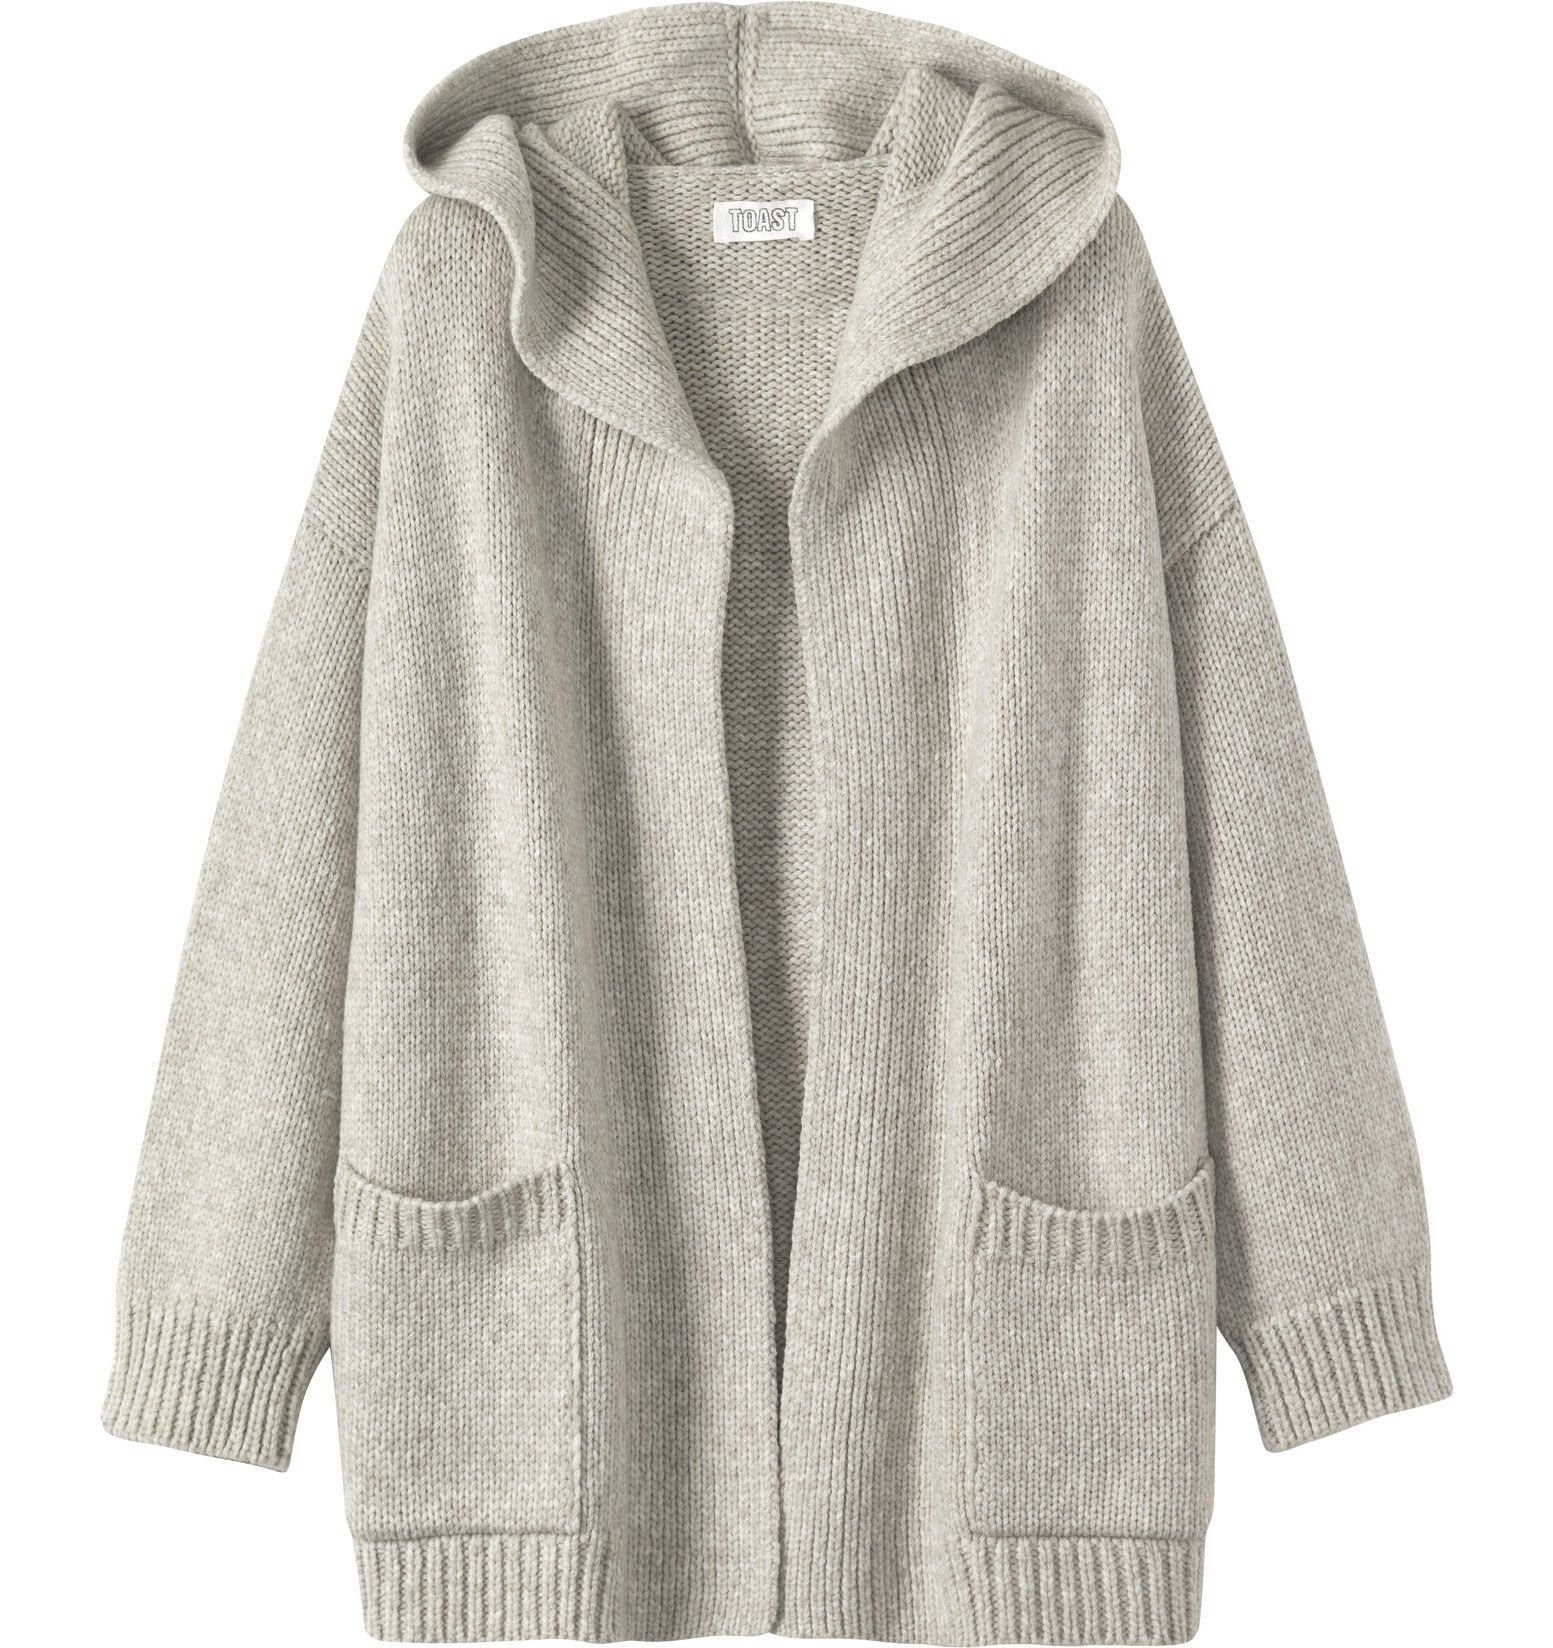 Warm, wrappy, hooded cardigan in a soft and weighty, Italian-spun ...